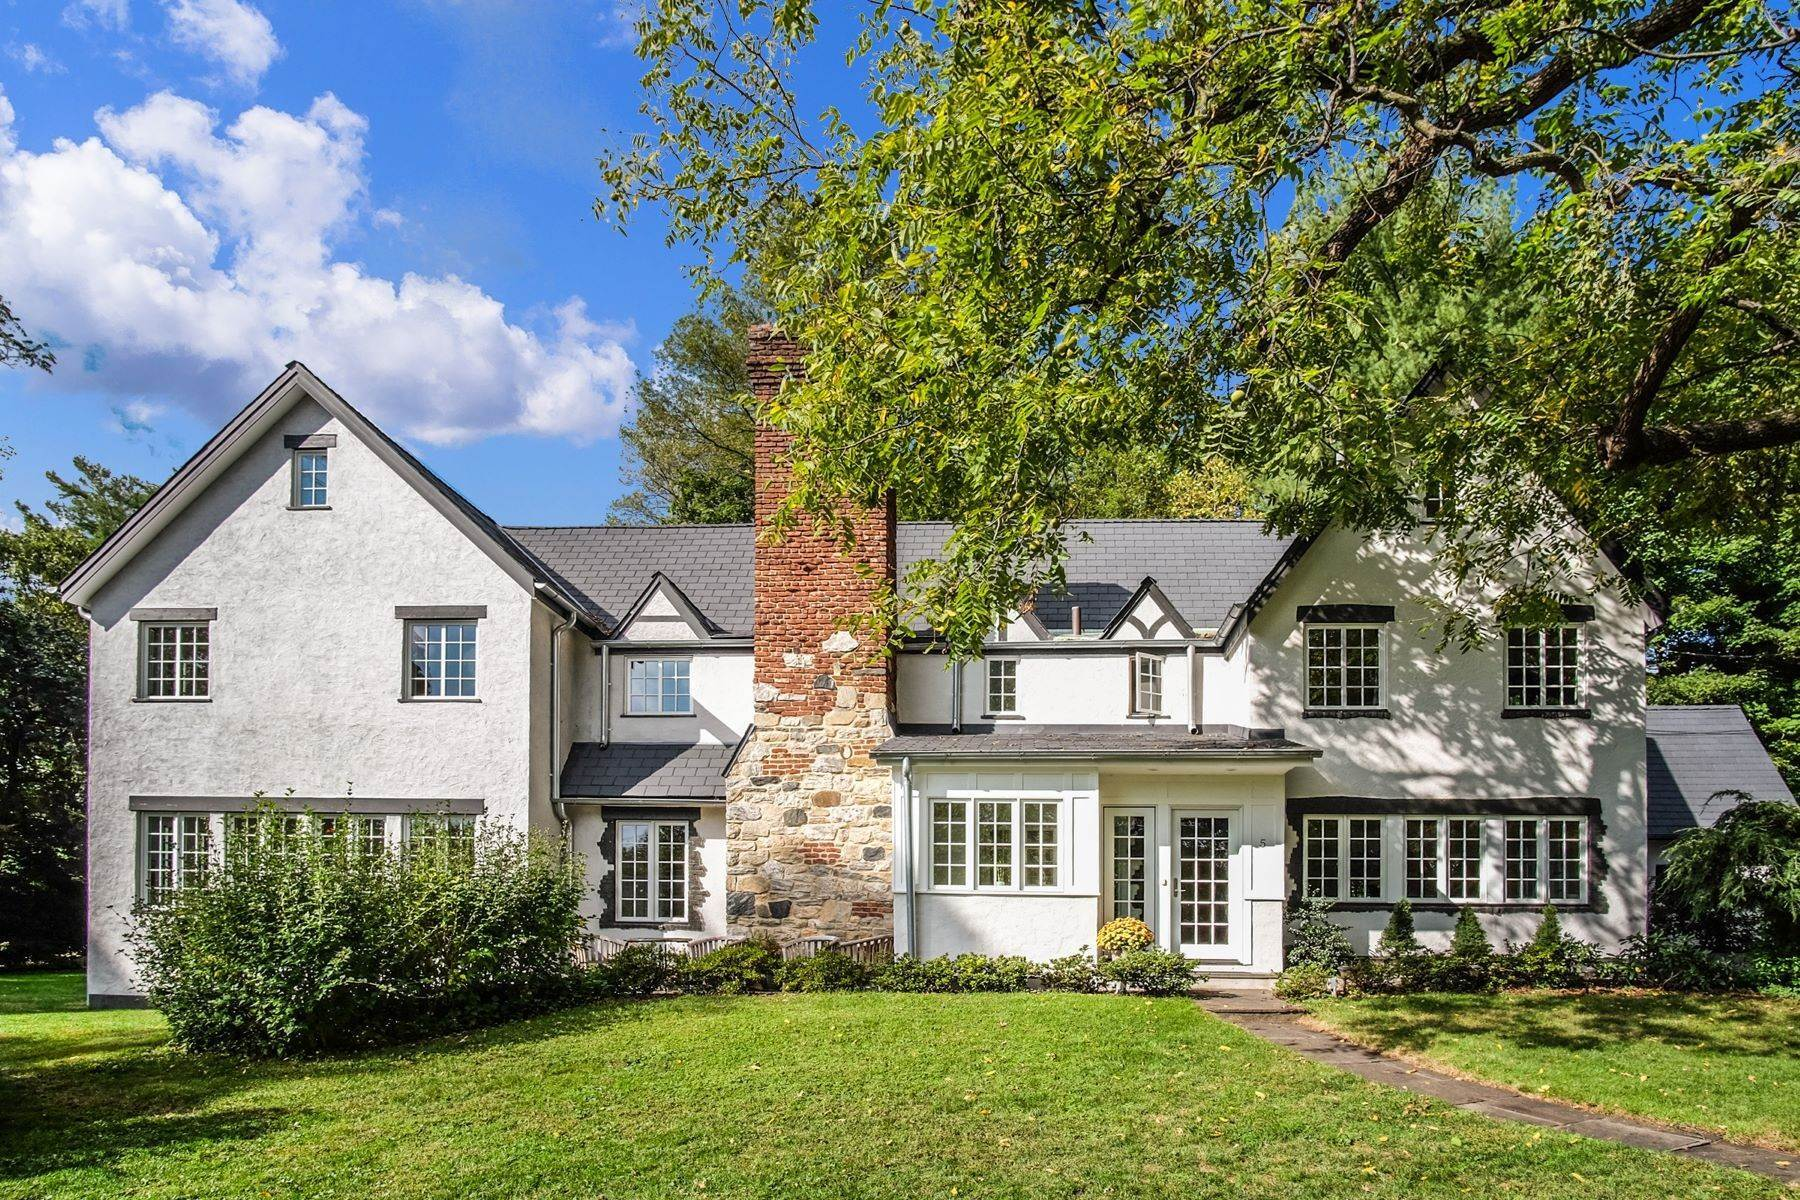 Single Family Homes for Sale at Beautifully Renovated Tudor! 5 Carstensen Road Scarsdale, New York 10583 United States